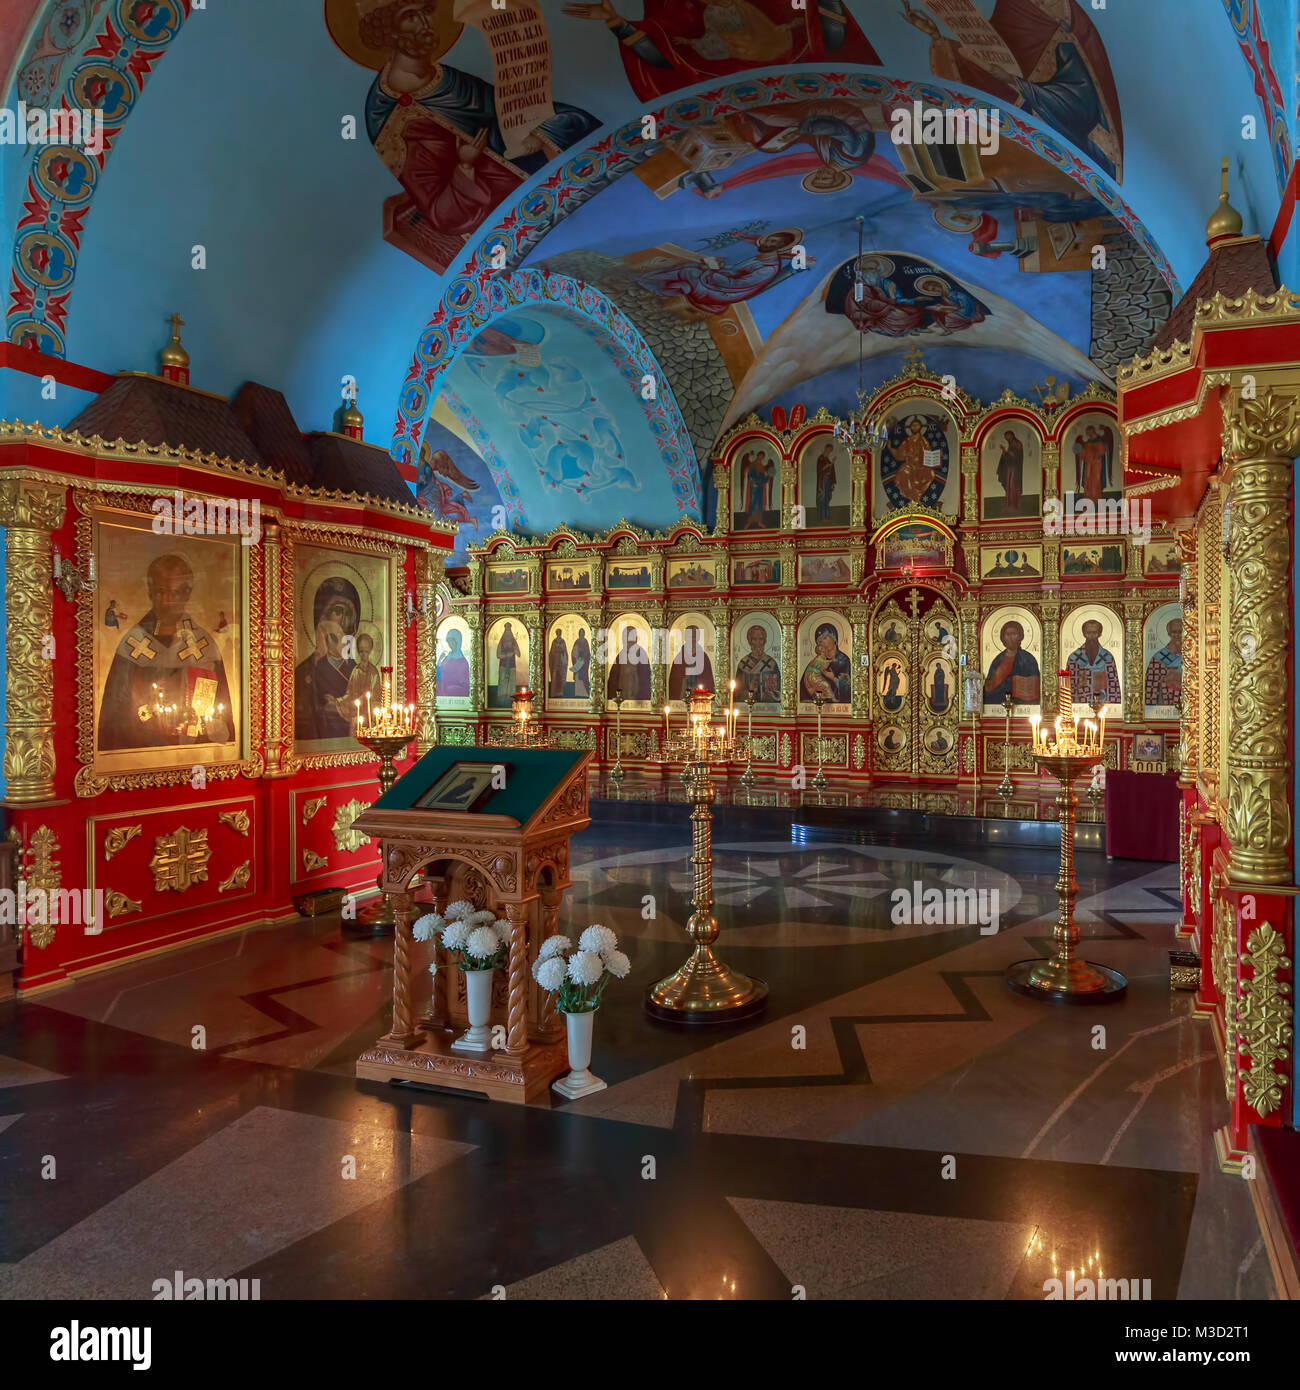 Astrakhan, Assumption Cathedral on the territory of the Astrakhan Kremlin: history, description, address 63